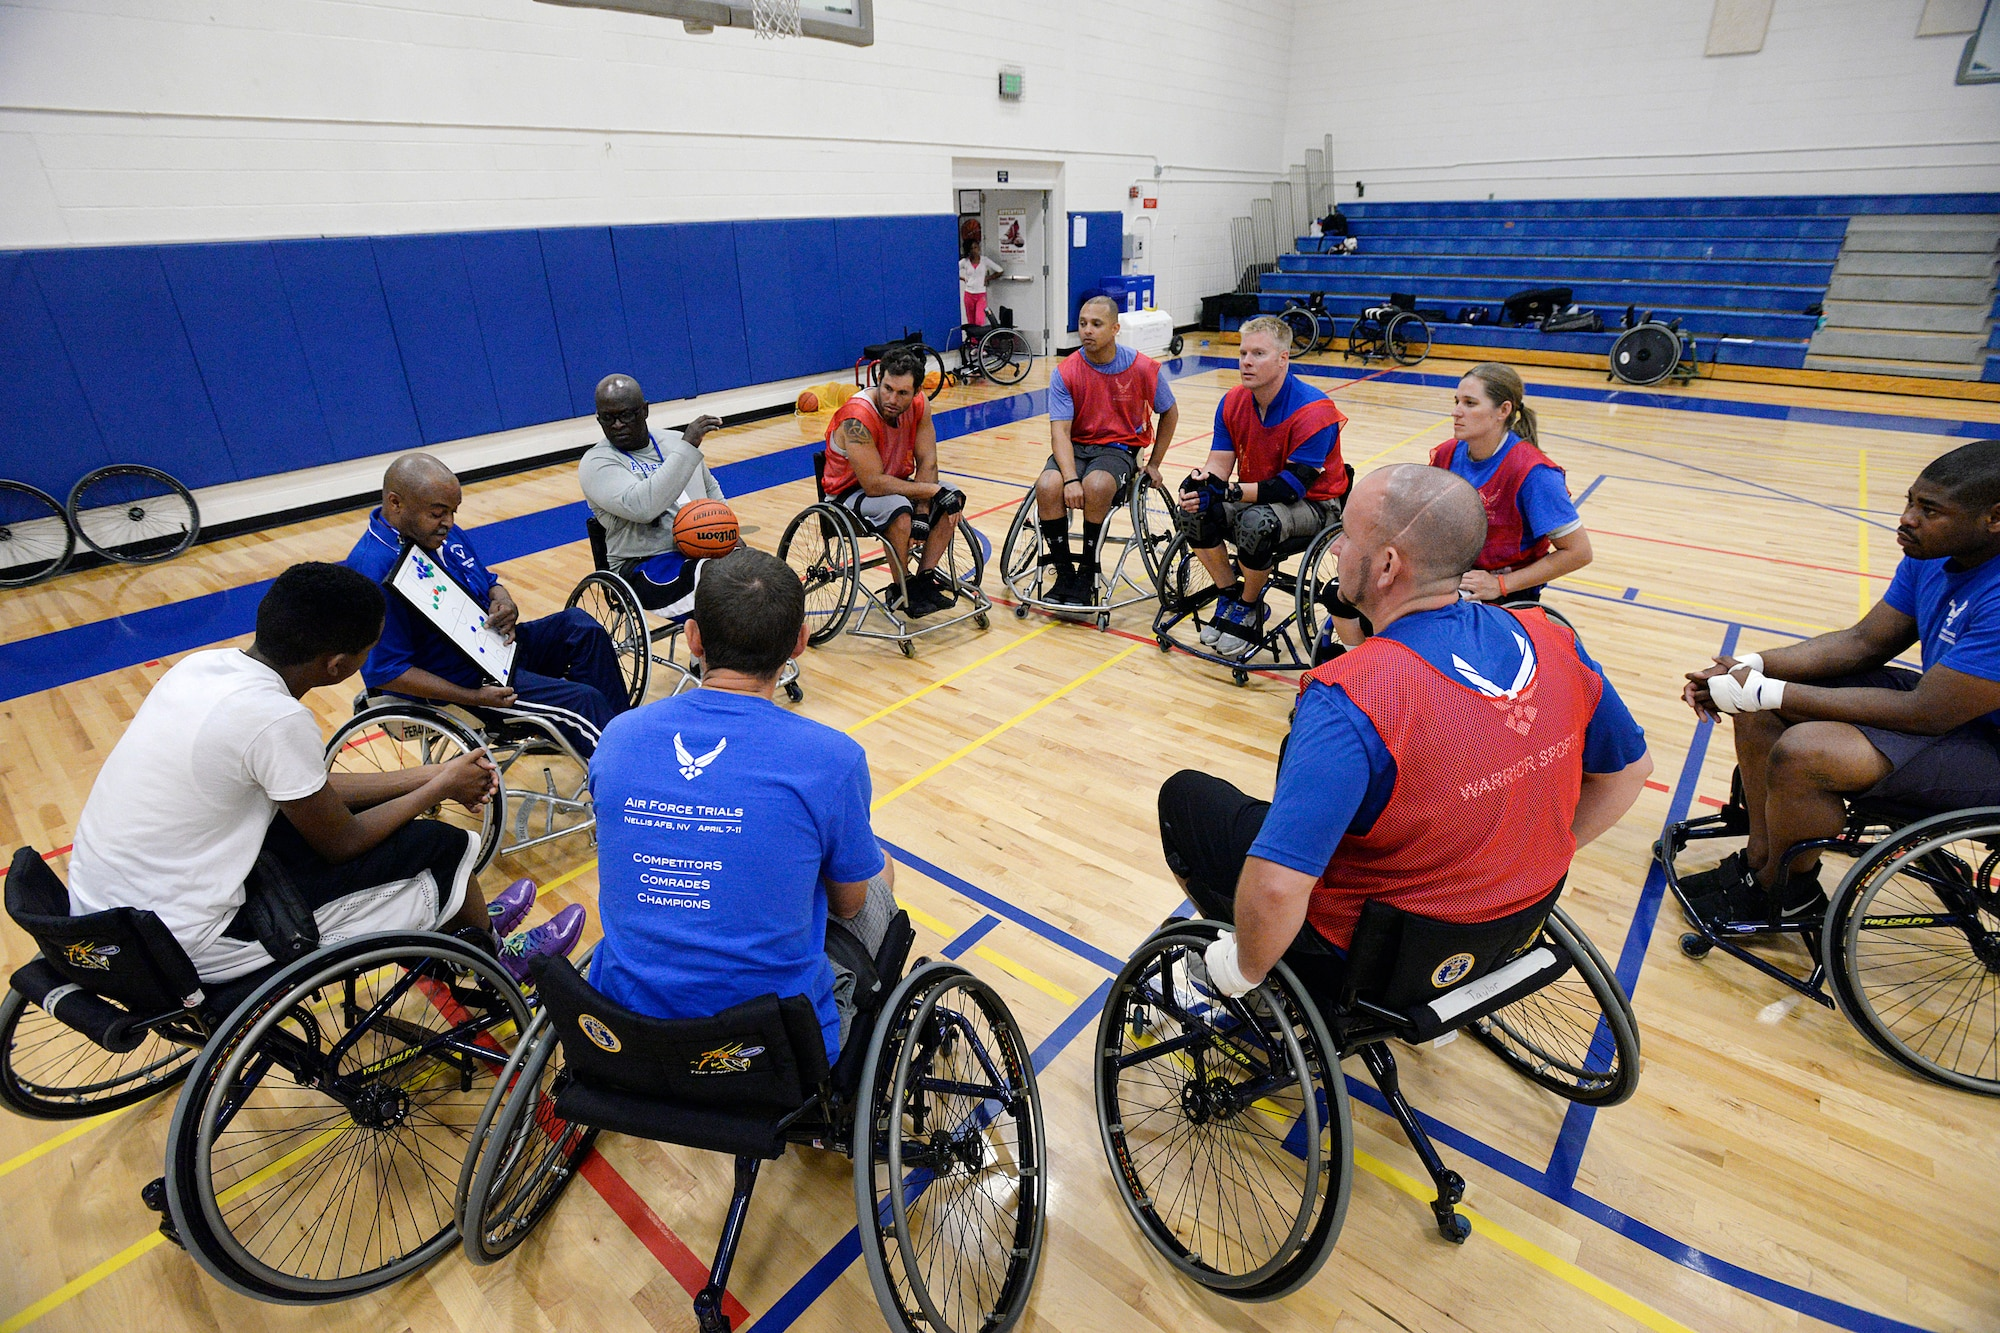 Wounded warriors gather around to learn a play during the final Warrior Games training camp at the Academy Aug. 5, 2014. More than 60 wounded veterans from across the country participated in the final Warrior and Invictus Games training camp here Aug. 3-7 to prepare for the fall games, motivate others and take a healthy step toward recovery. (U.S. Air Force photo/Mike Kaplan)